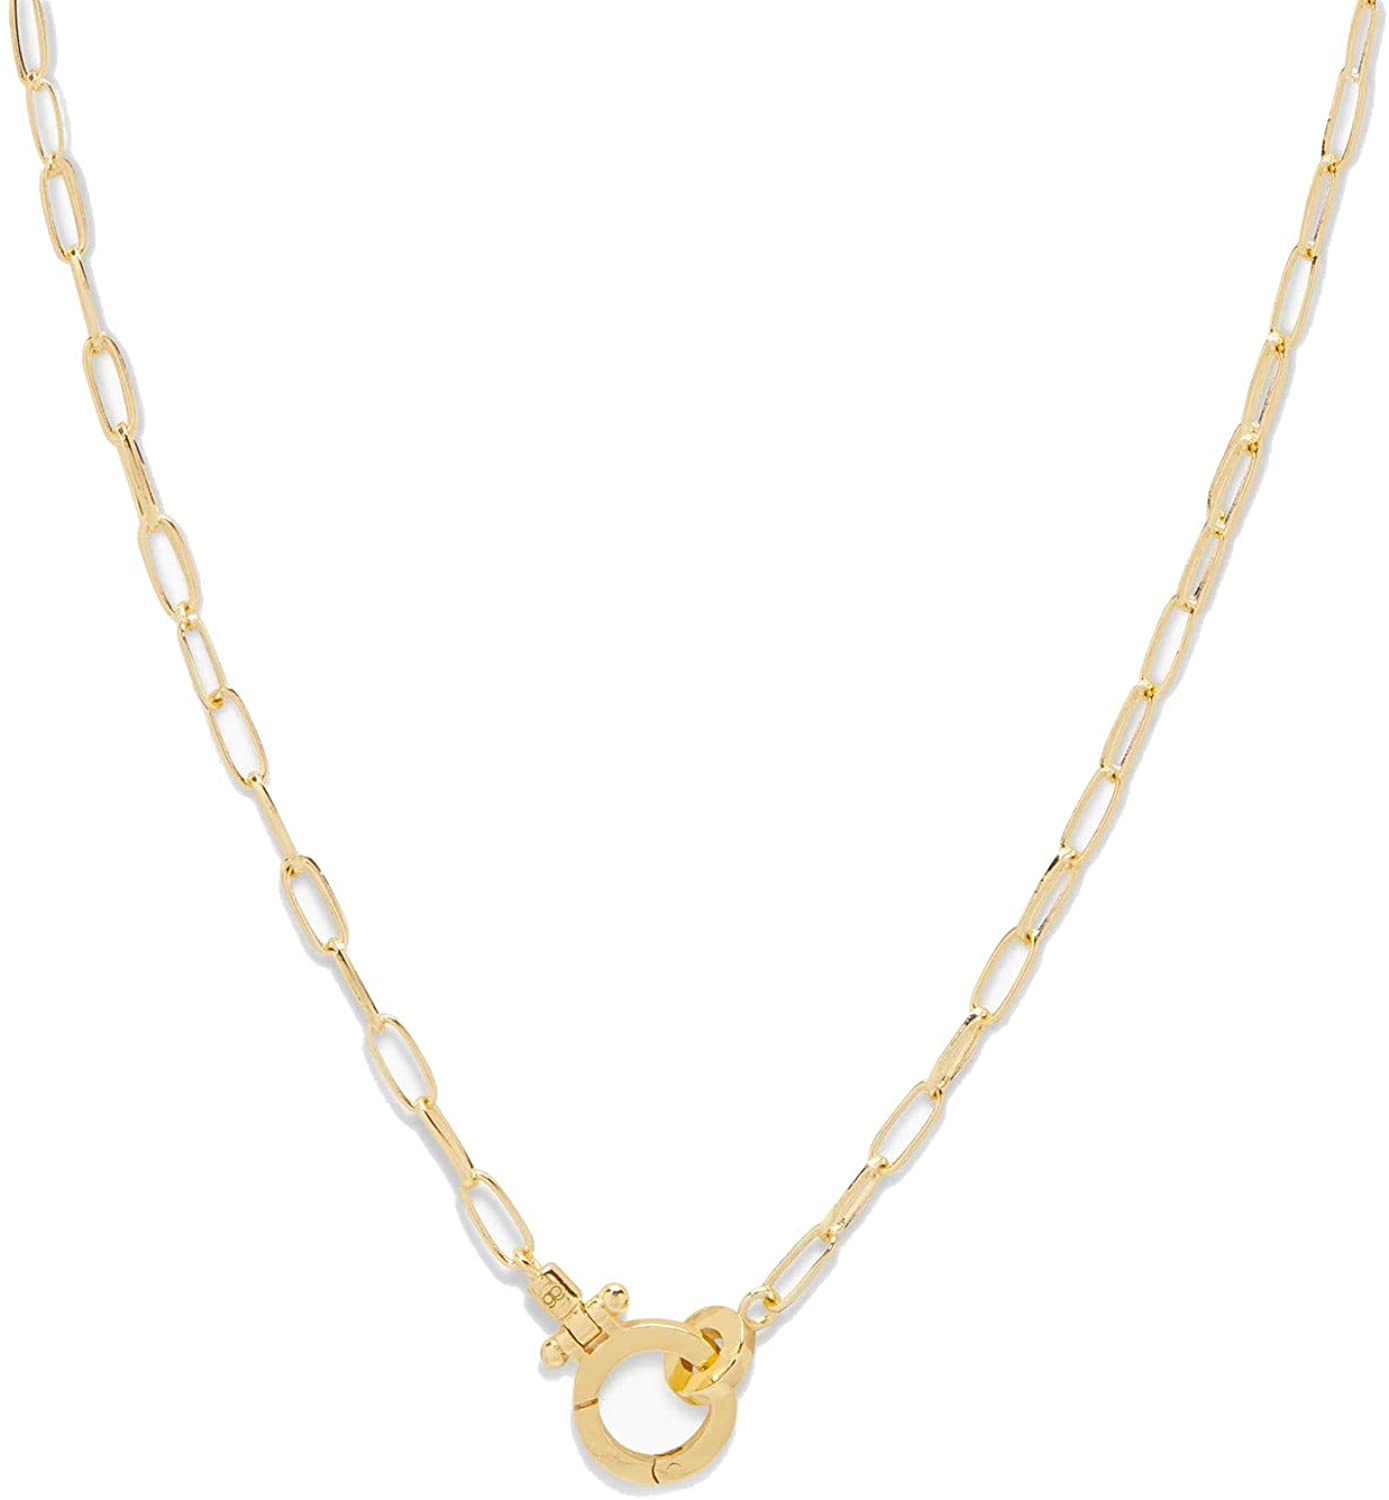 gorjana Women's Parker Mini Paperclip Link Chain Necklace, 18K Gold Plated, Chunky Clasp